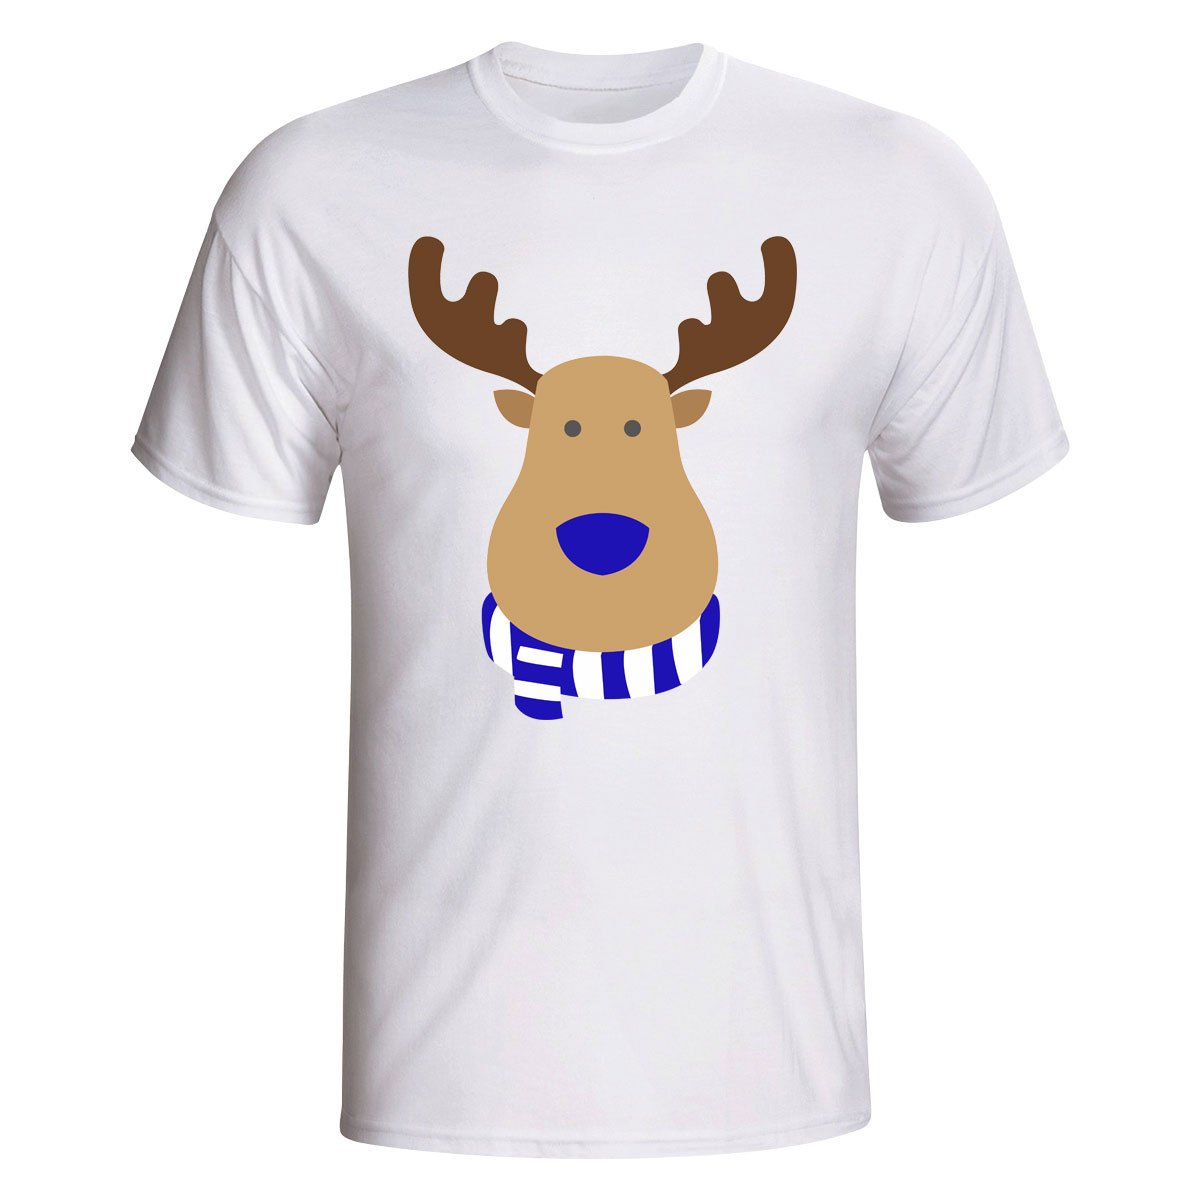 Hertha Berlin Rudolph Supporters T-shirt (white) Kids B07D8KV8MNWhite LB (9-11 Years)